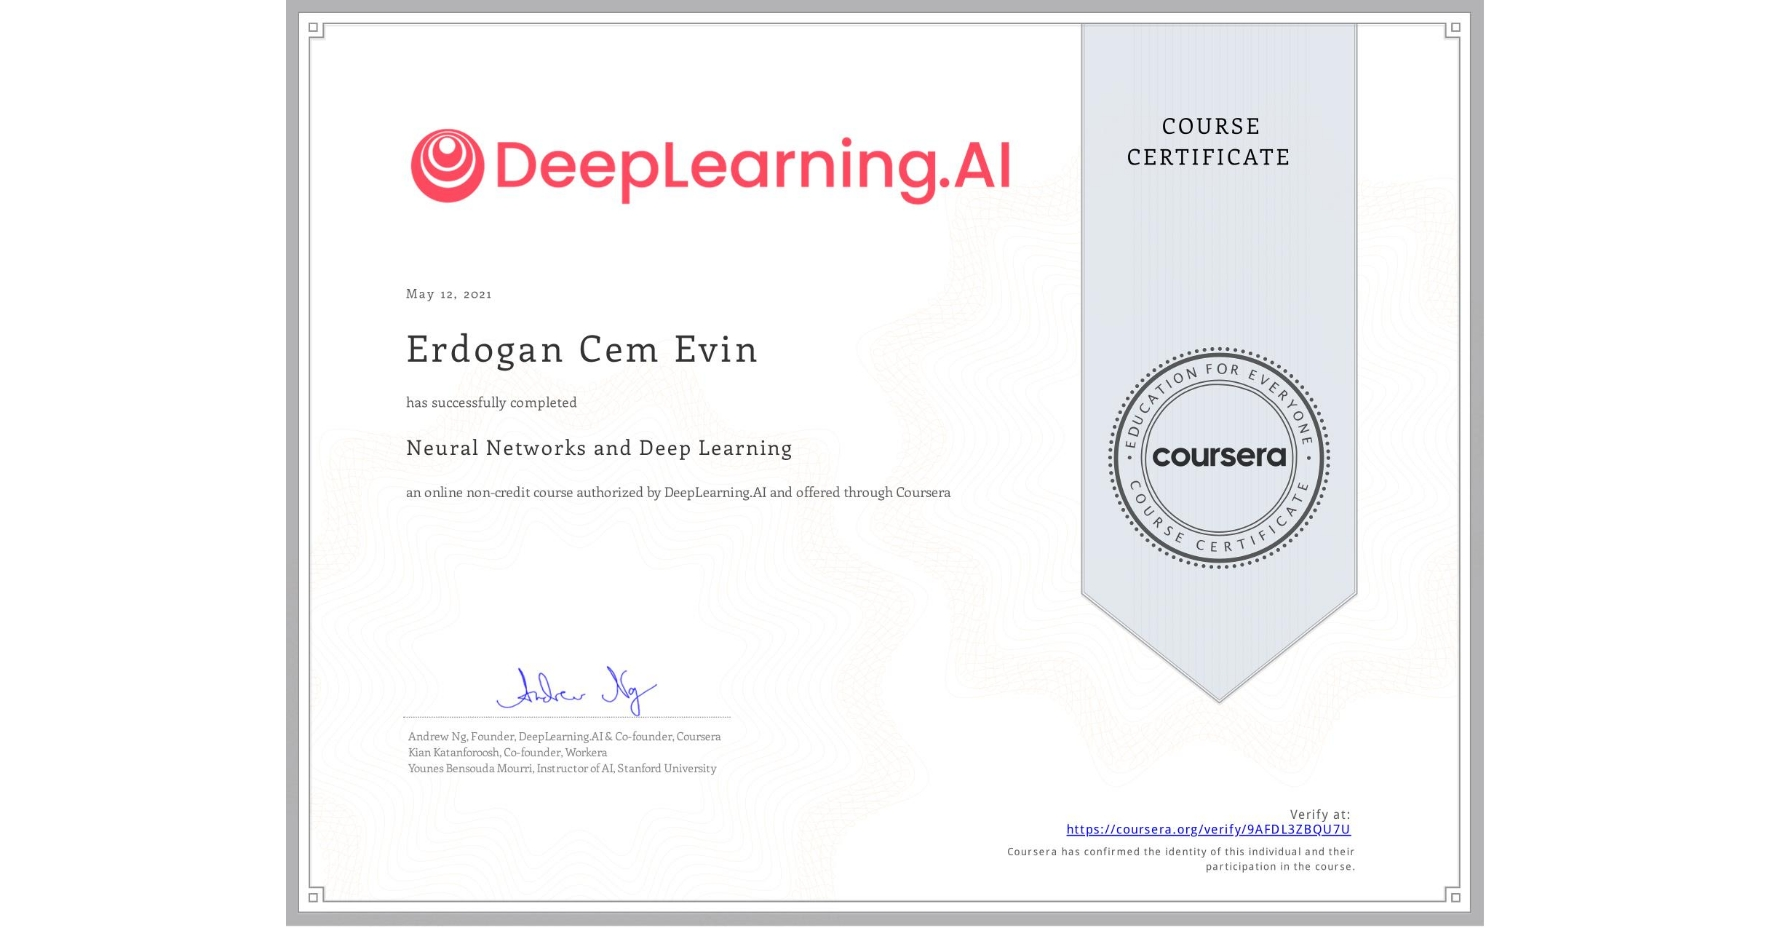 View certificate for Erdogan Cem  Evin, Neural Networks and Deep Learning, an online non-credit course authorized by DeepLearning.AI and offered through Coursera